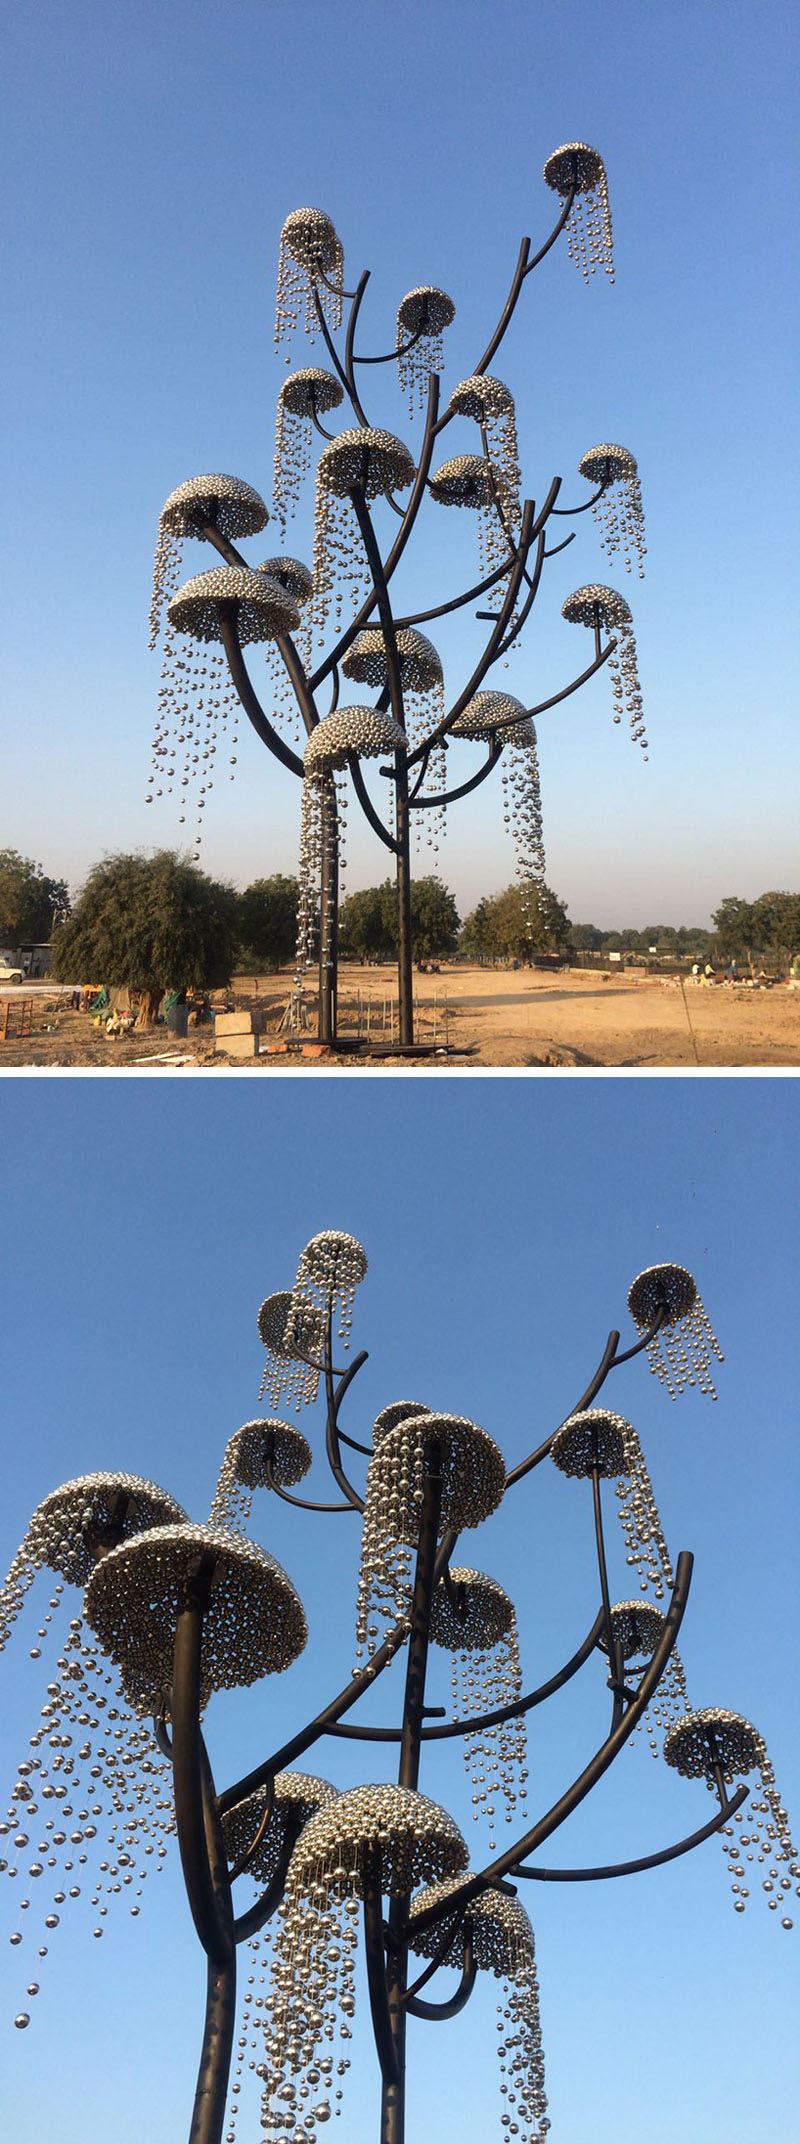 "Indian designer and artist Vibhor Sogani has designed a modern stainless steel sculpture named ""Kalpavriksha - the wish fulfilling tree"". #Sculpture #Art #PublicArt"